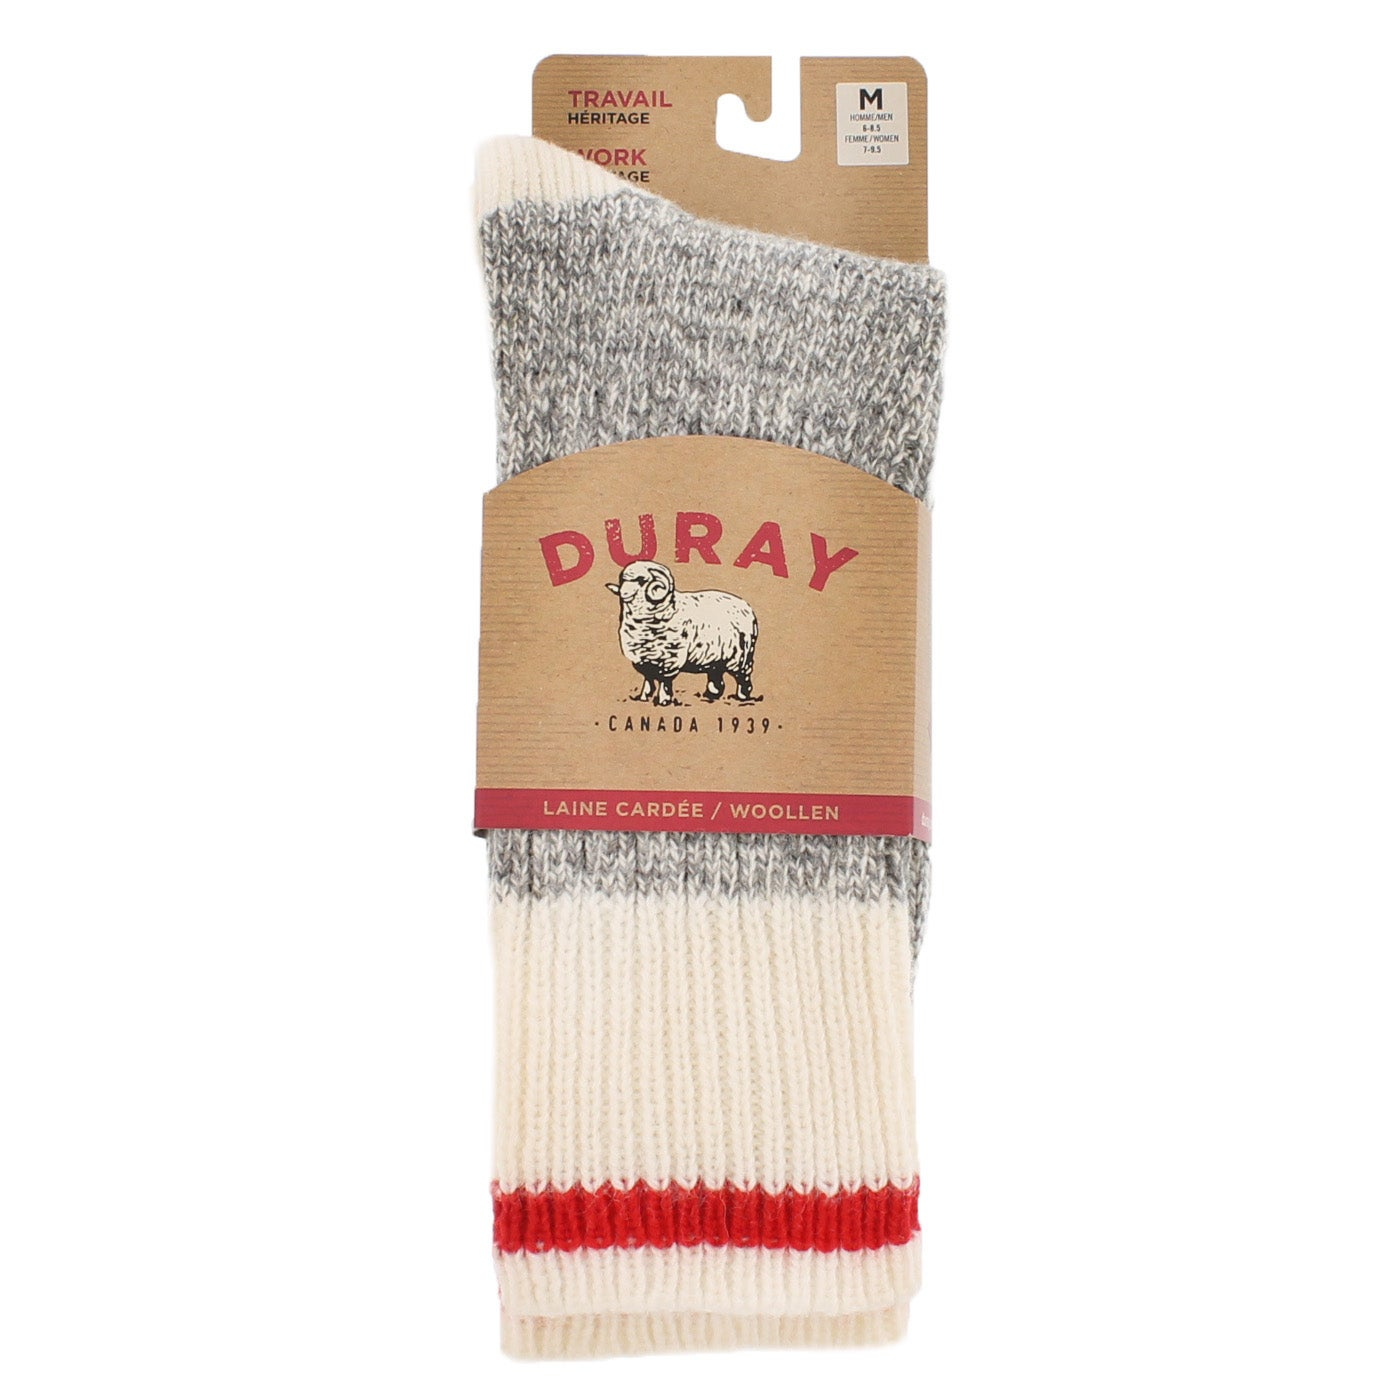 Lds Duray grey/wht wool blend heavy sock